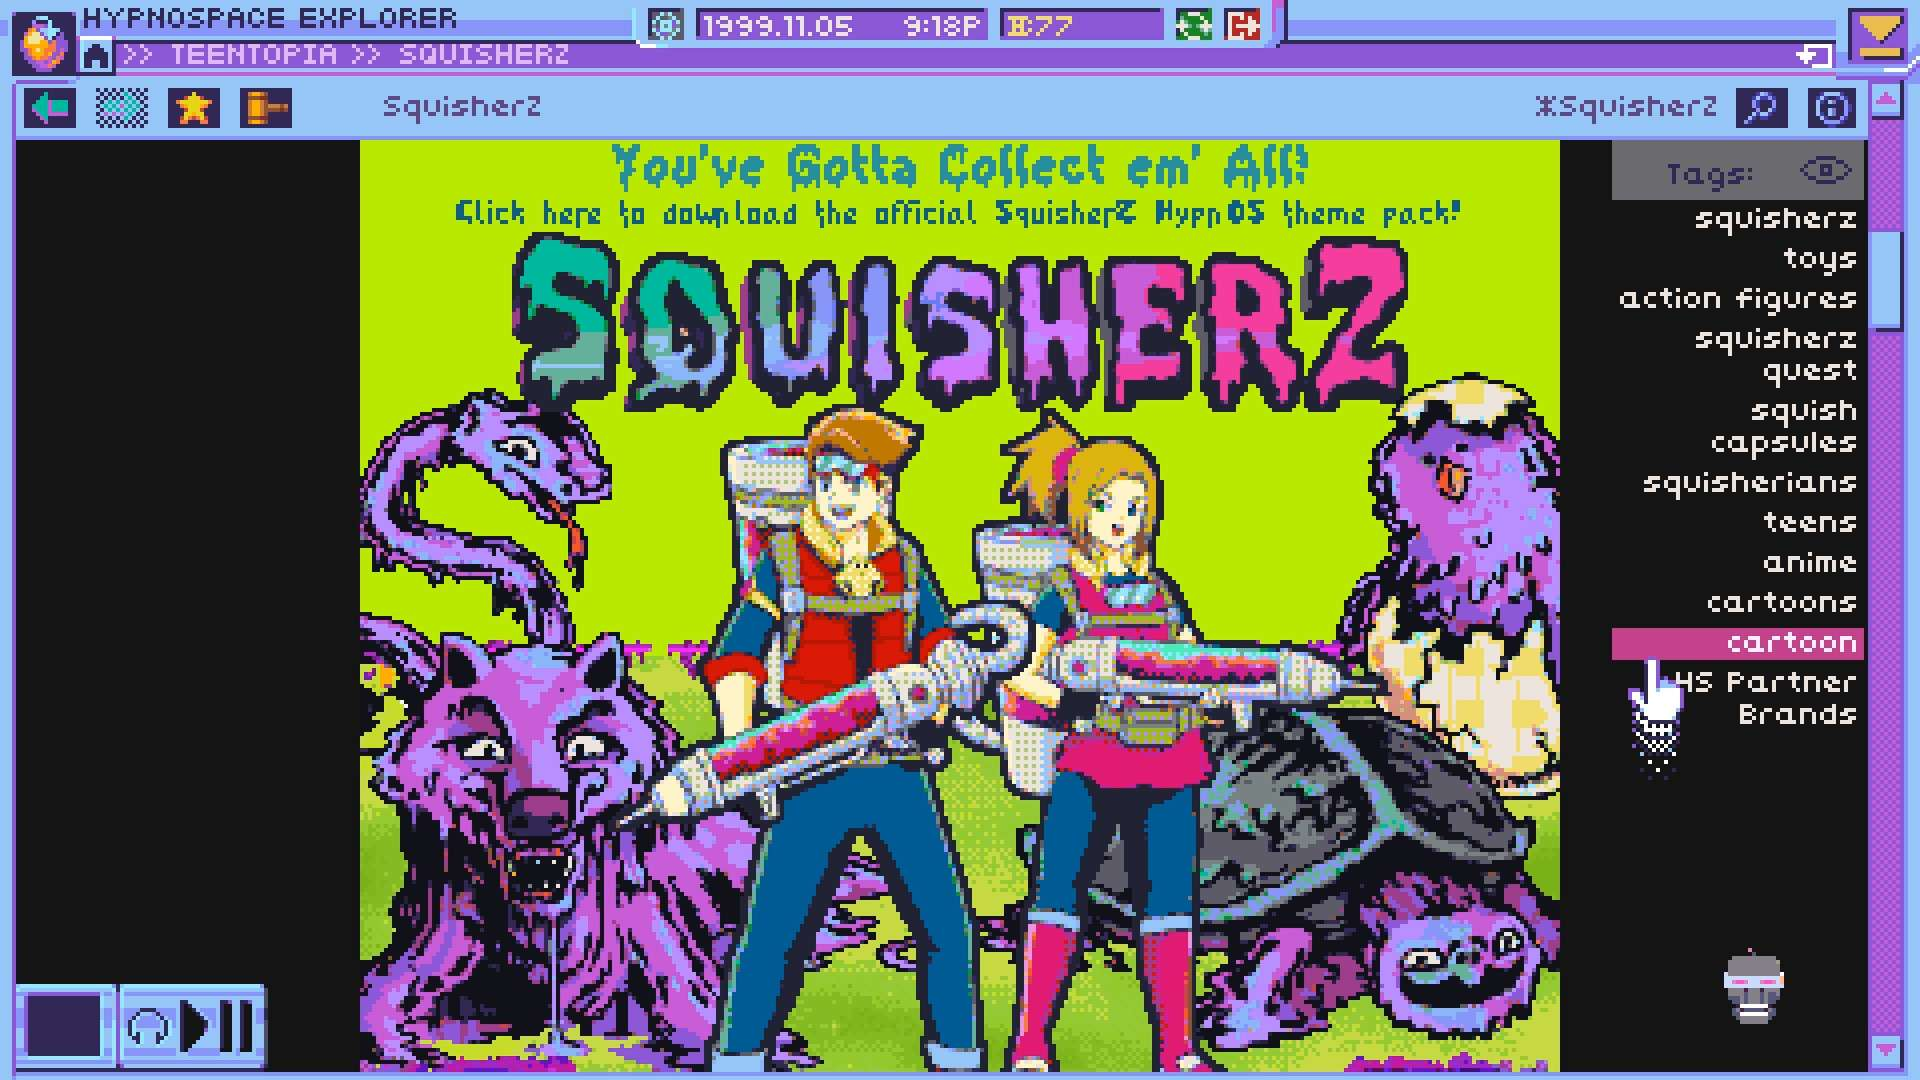 Hypnospace Outlaw #3